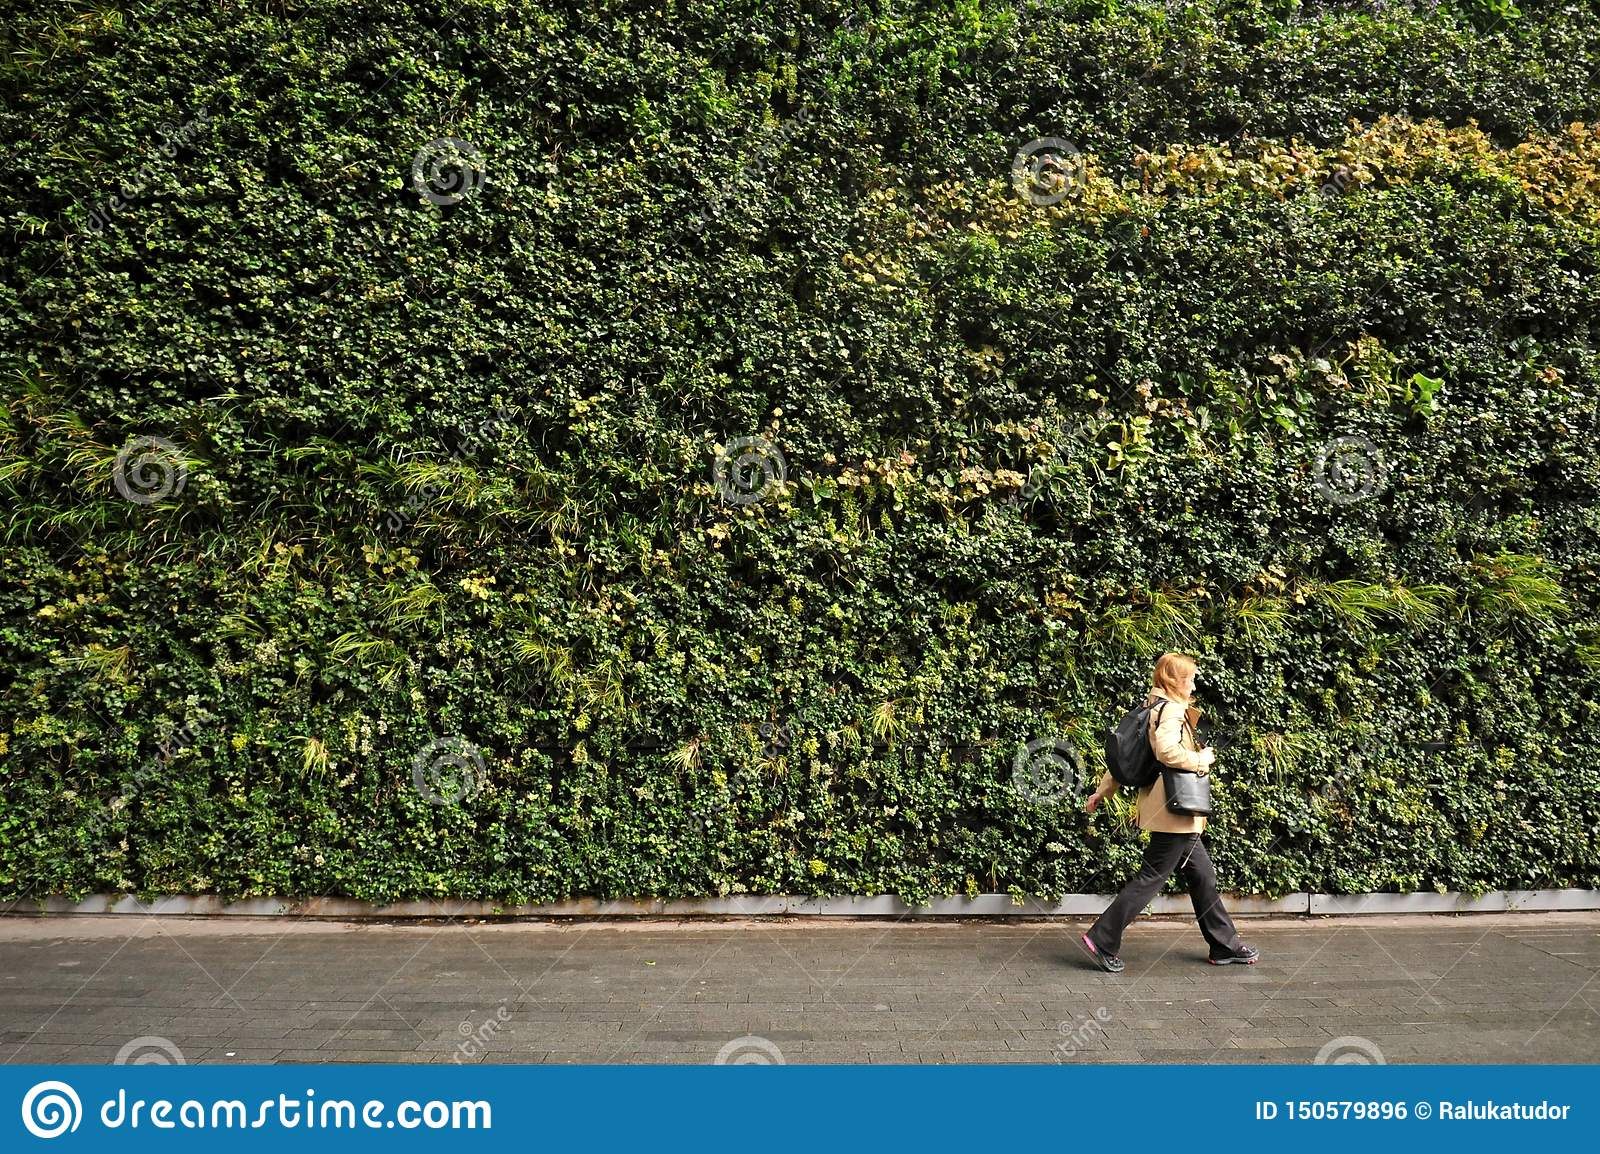 The largest vertical garden in London in Fenchurch Street living wall contains around 52,000 plants.